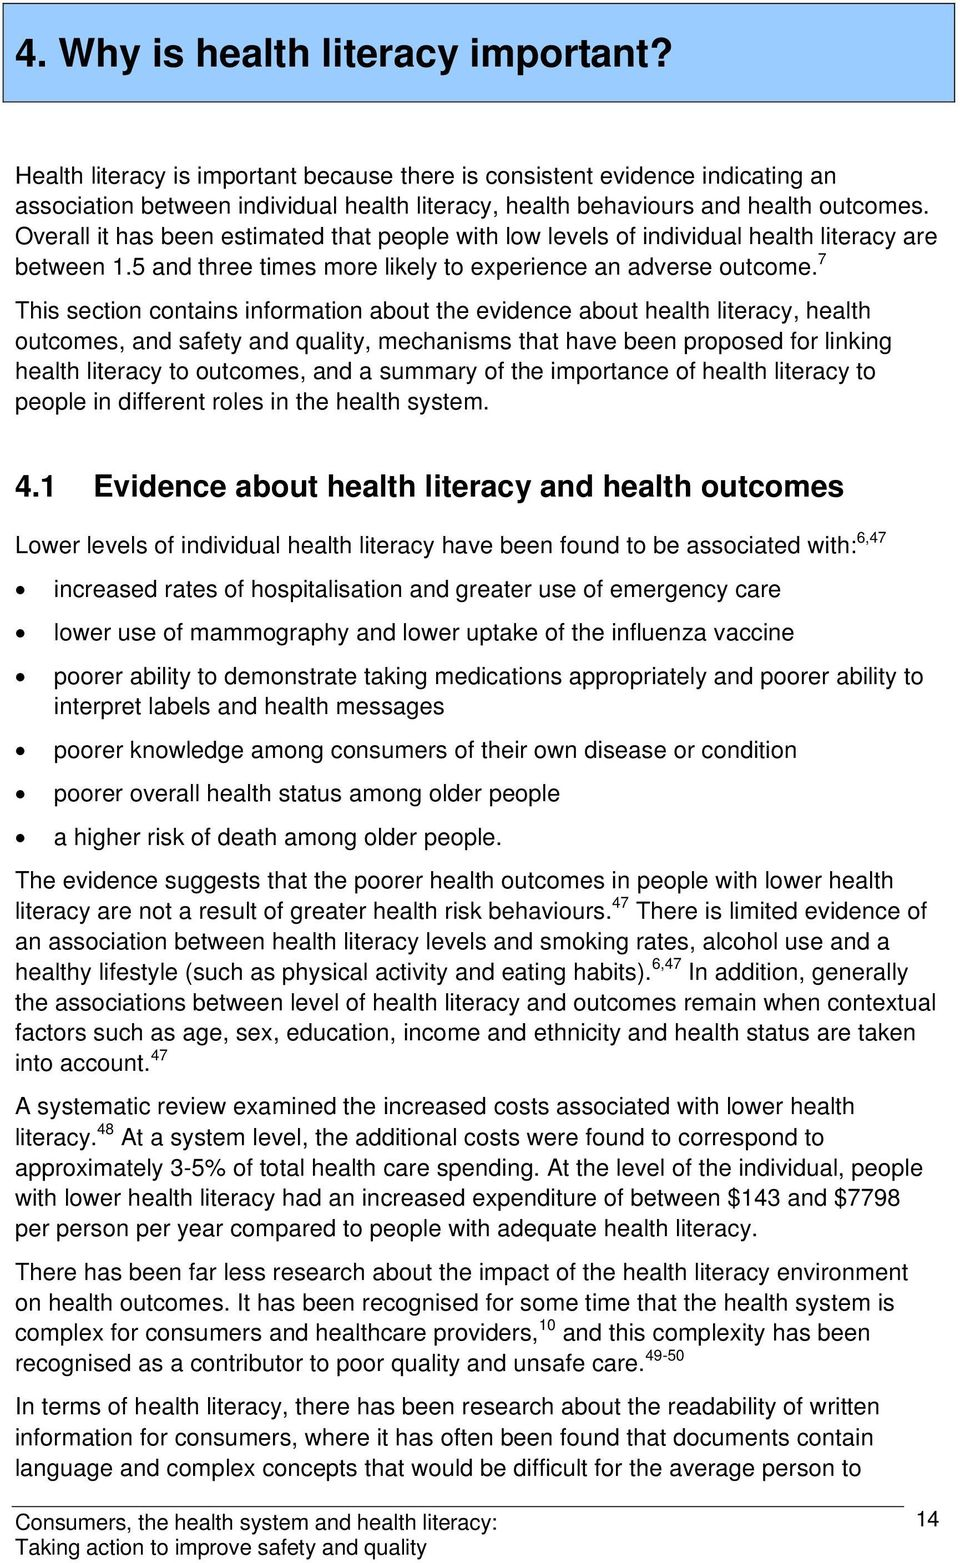 Overall it has been estimated that people with low levels of individual health literacy are between 1.5 and three times more likely to experience an adverse outcome.